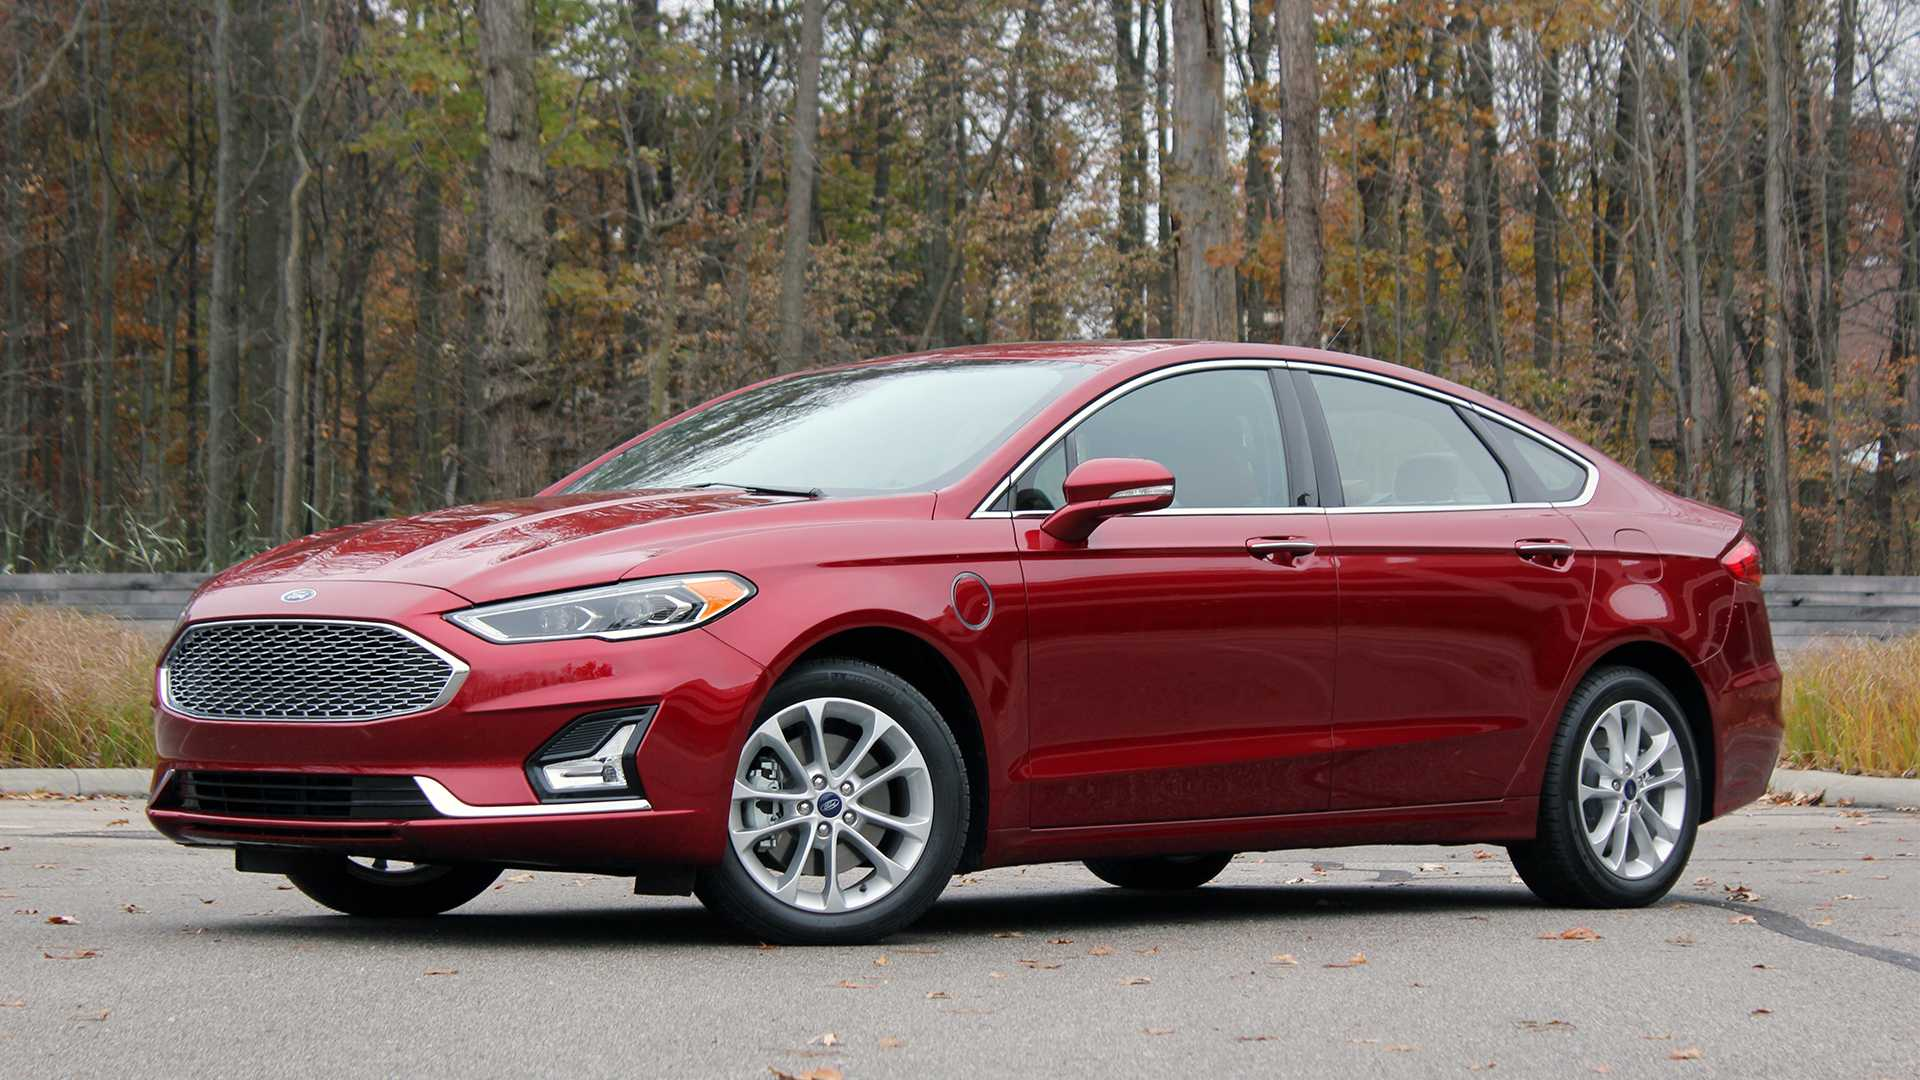 5 Reasons Not To Buy A Ford Fusion Energi And 2 Reasons You Should